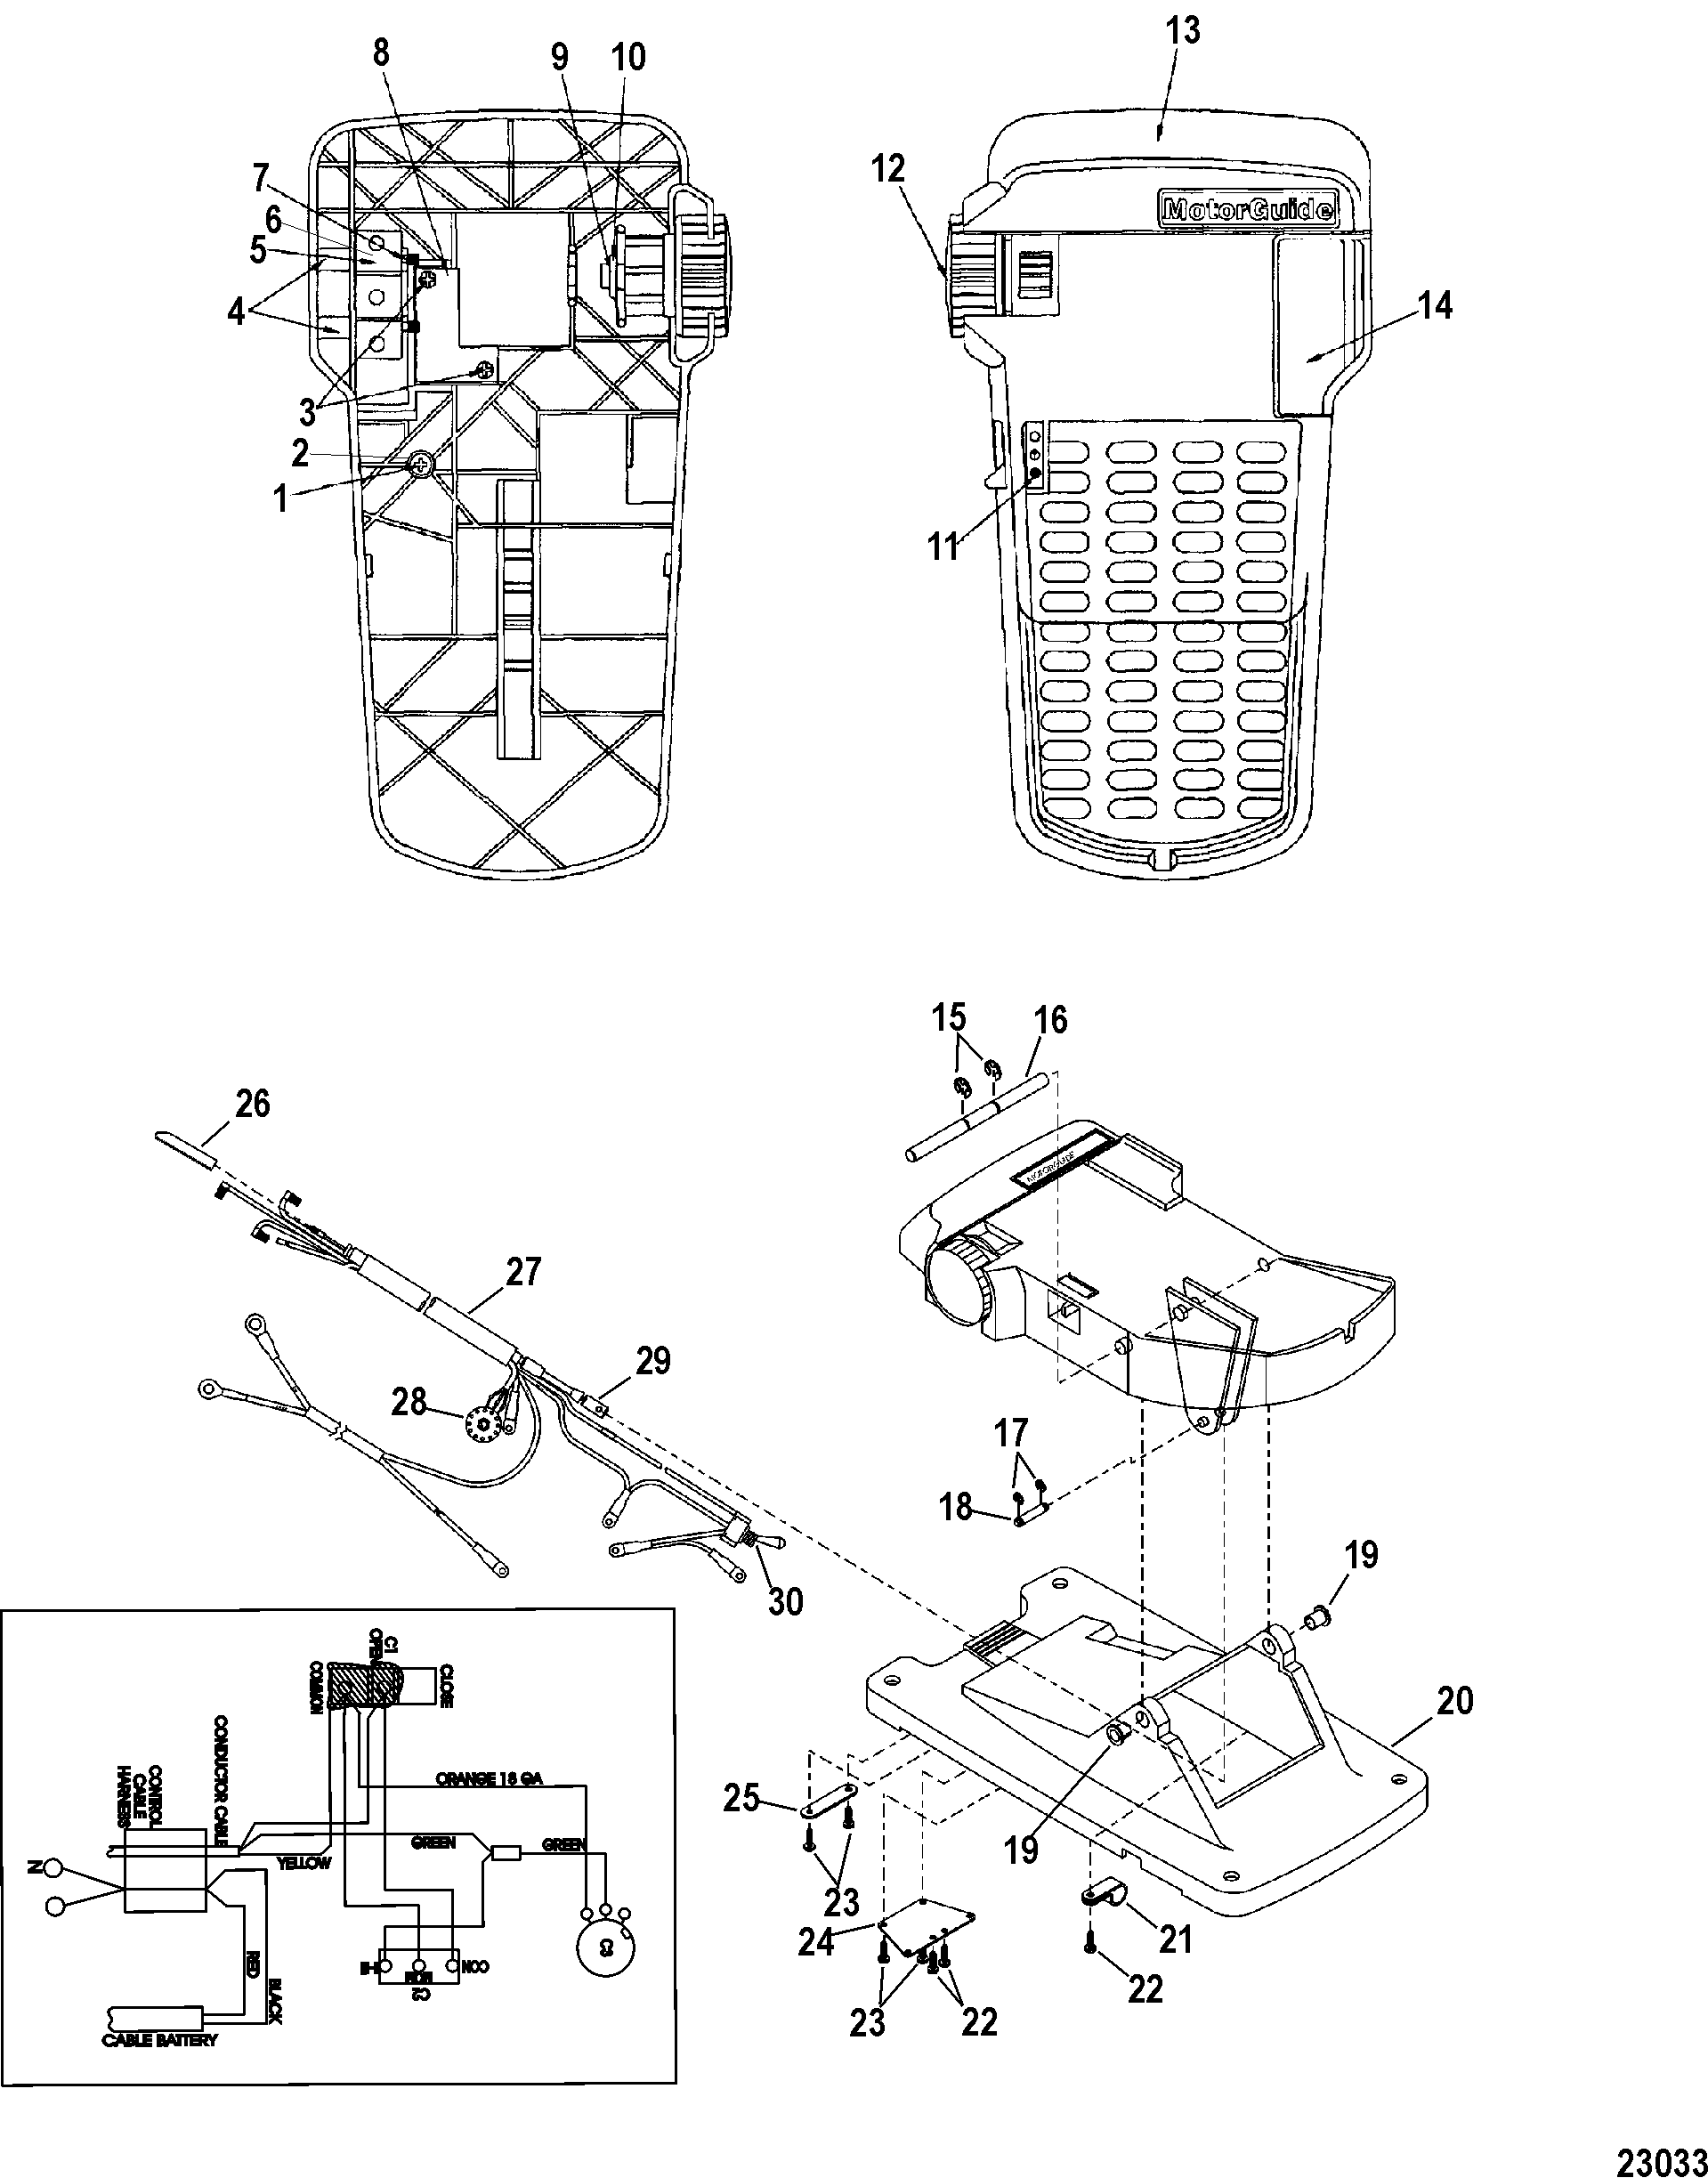 2000 mercury outboard motor diagram